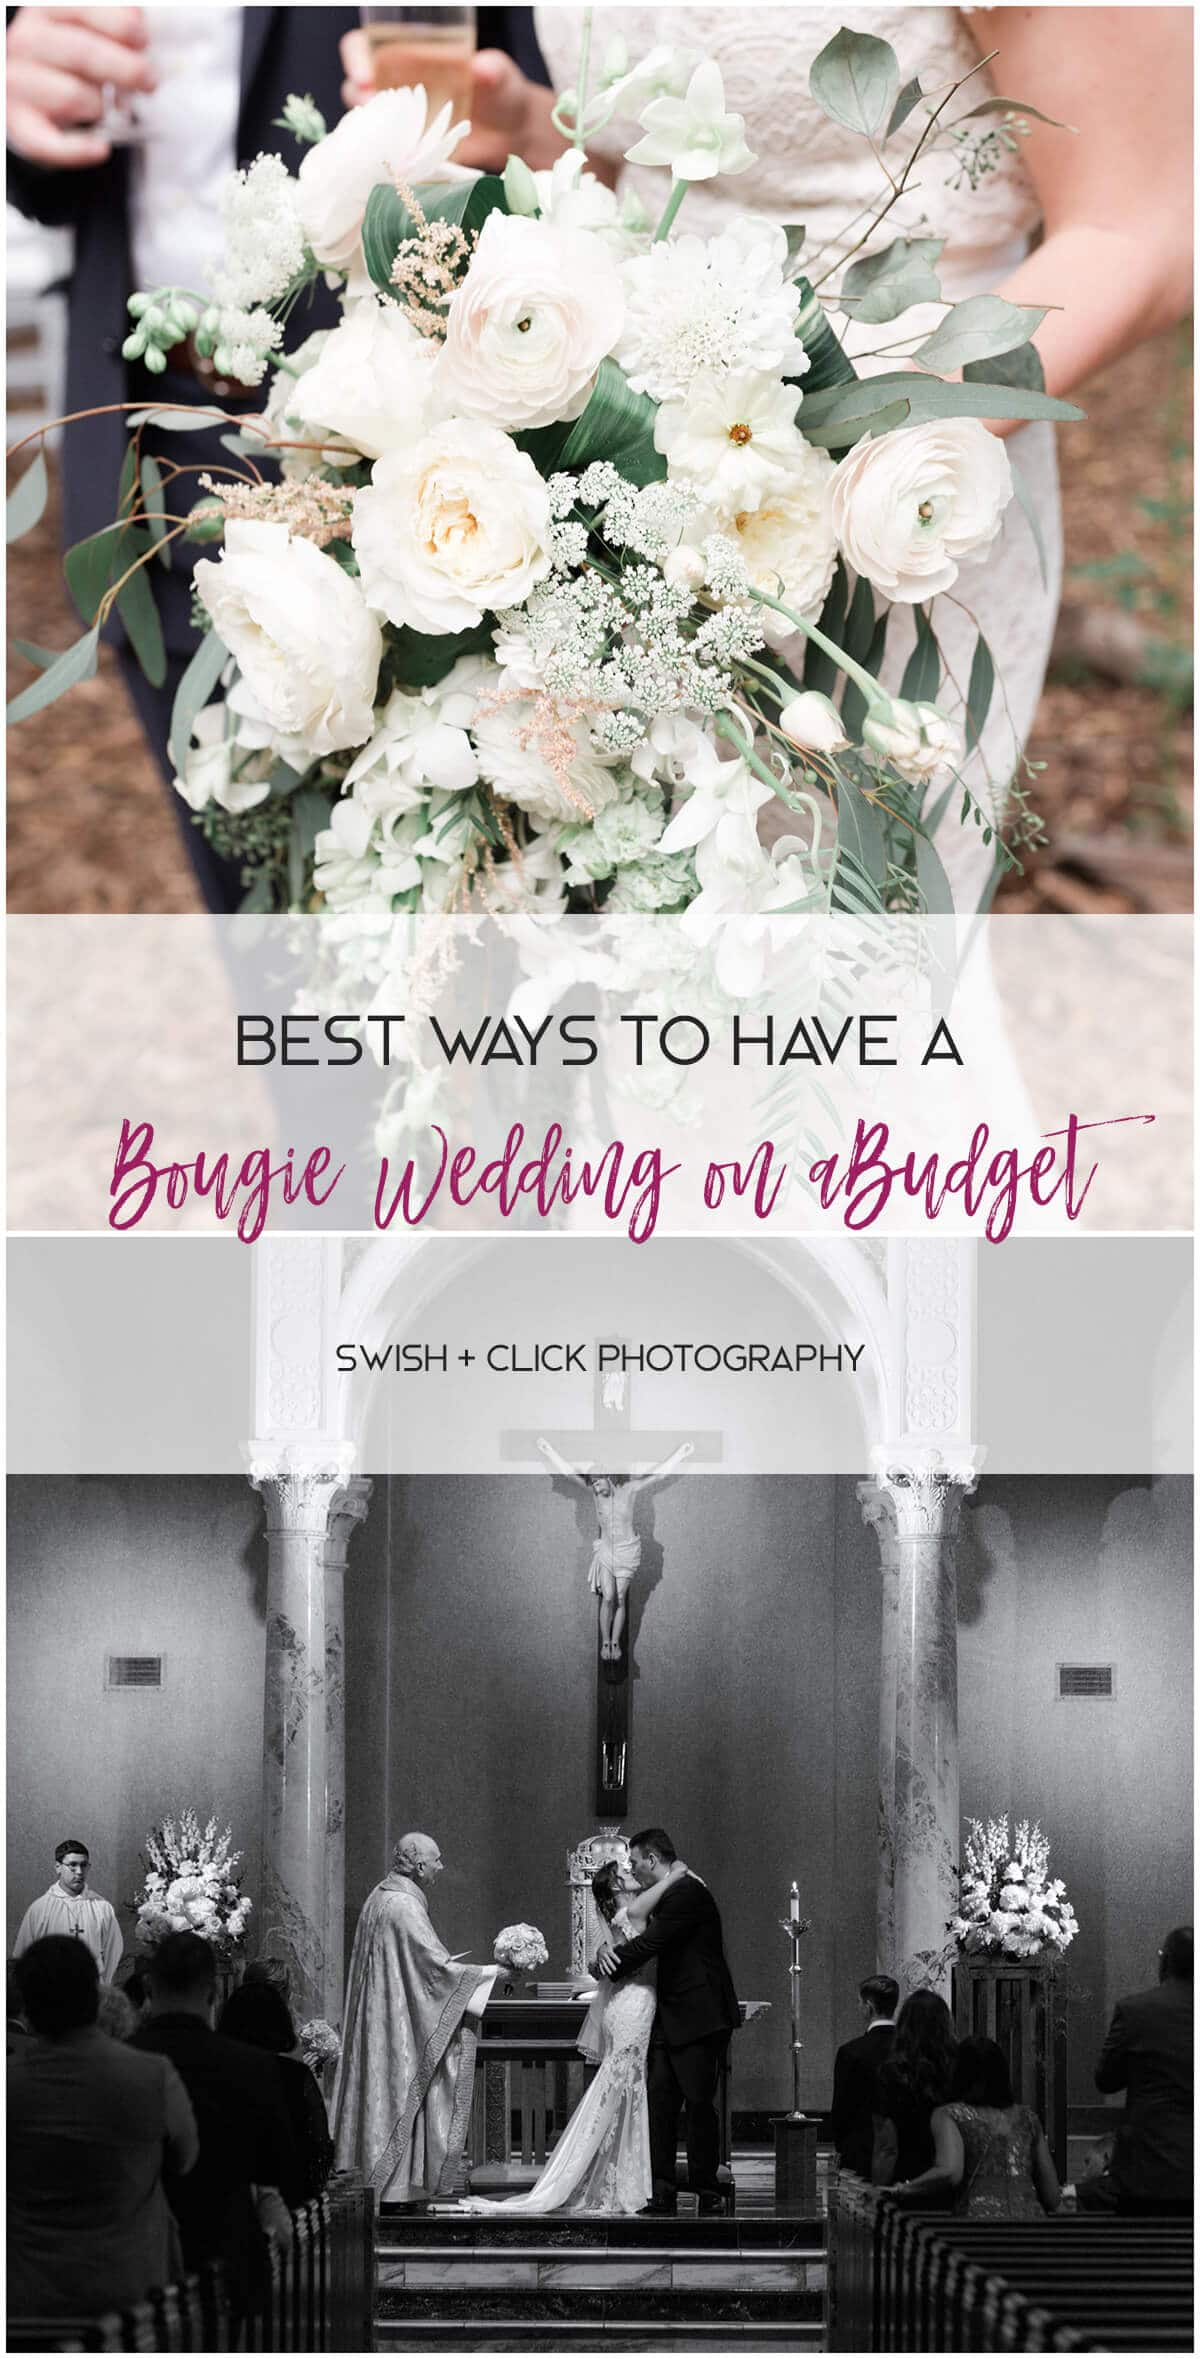 The Best ways to Have a Bougie Wedding on a Budget